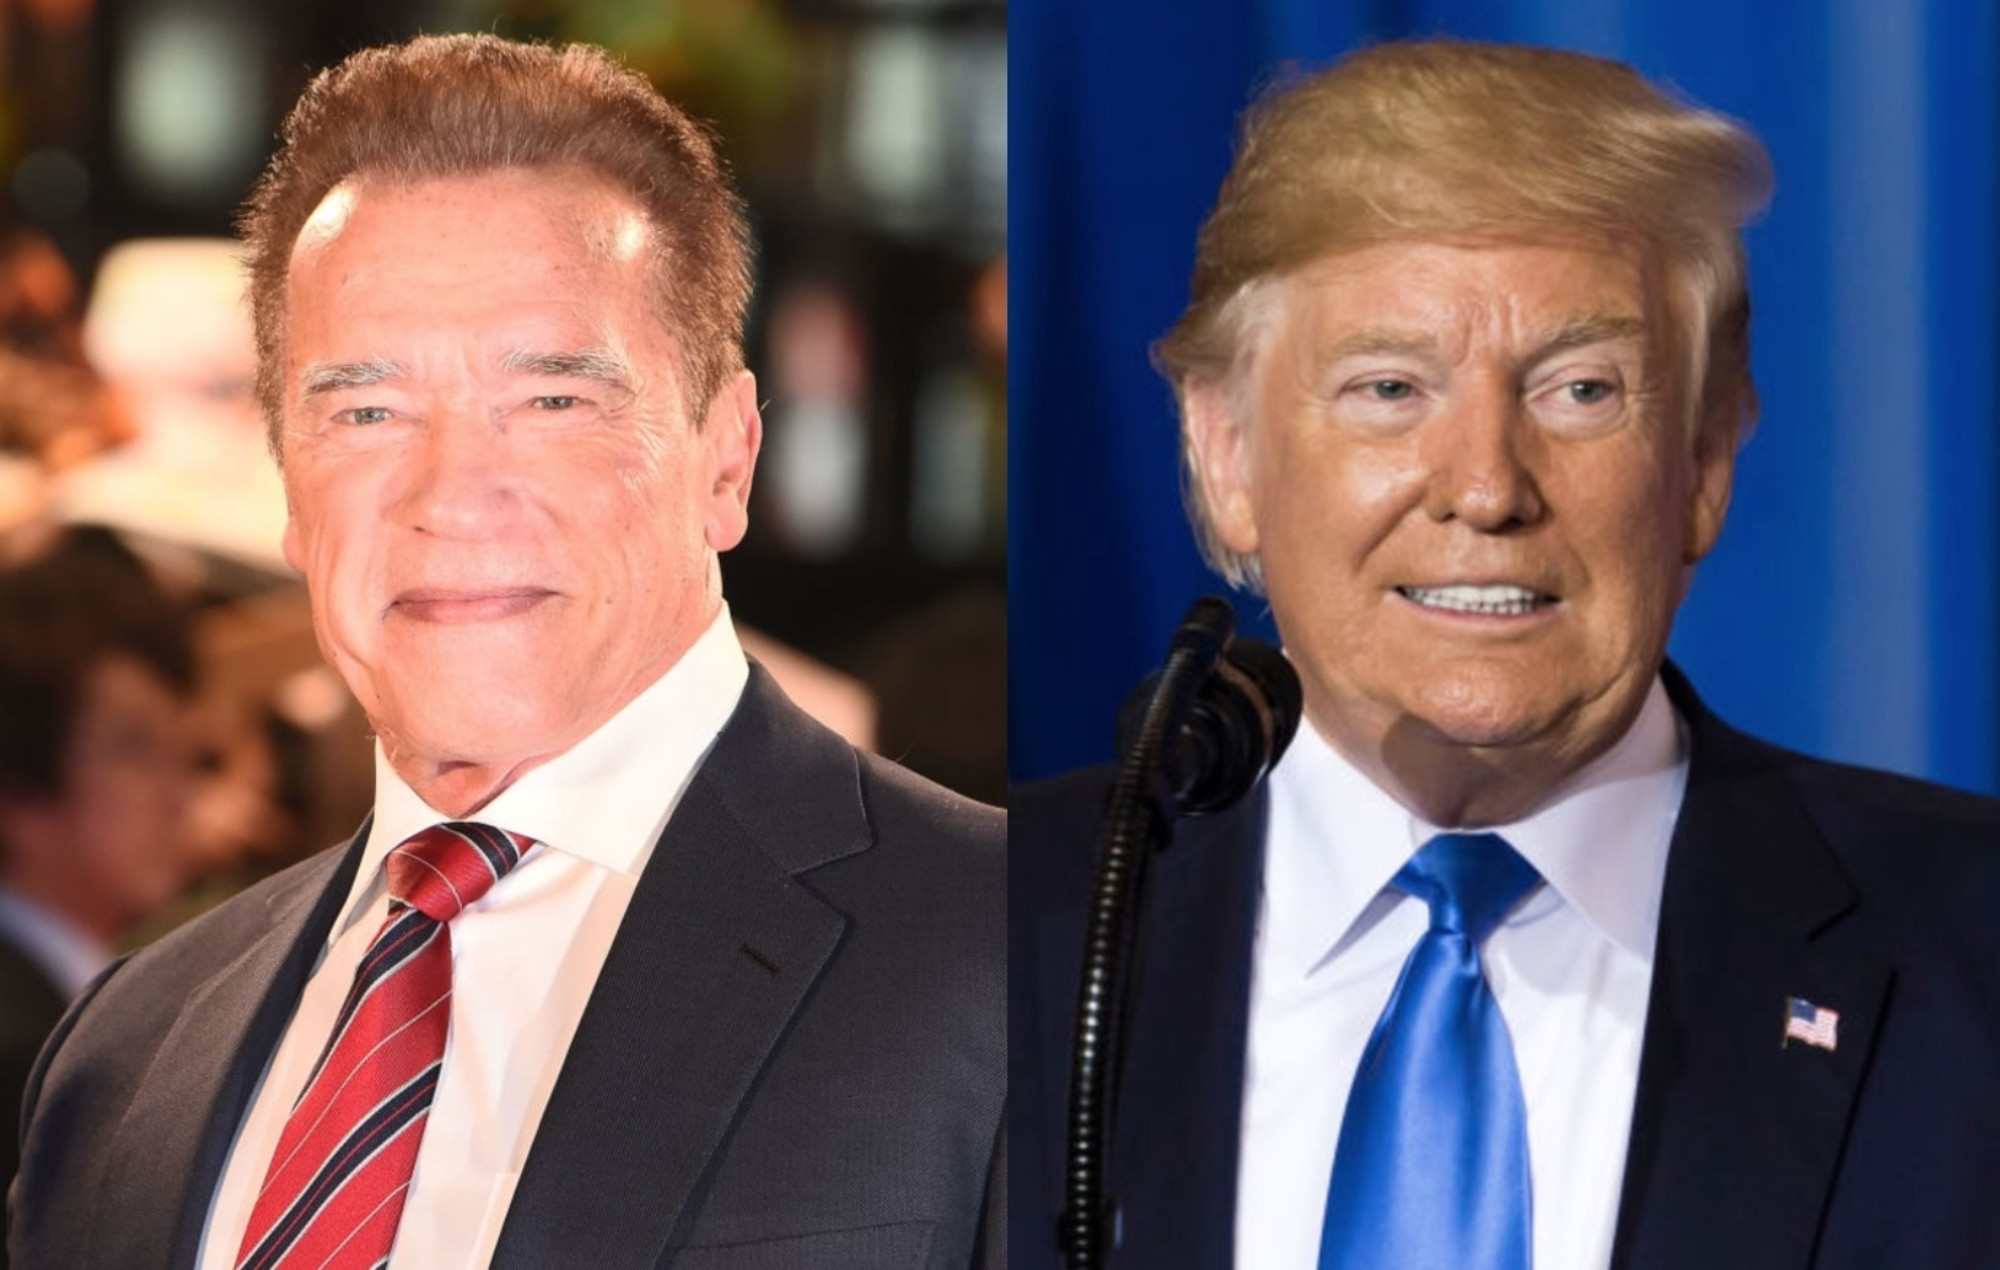 Trump will be remembered as worst president in history- Arnold Schwarzenegger says as he rebukes the US President and compares Capitol riot to Kristallnacht